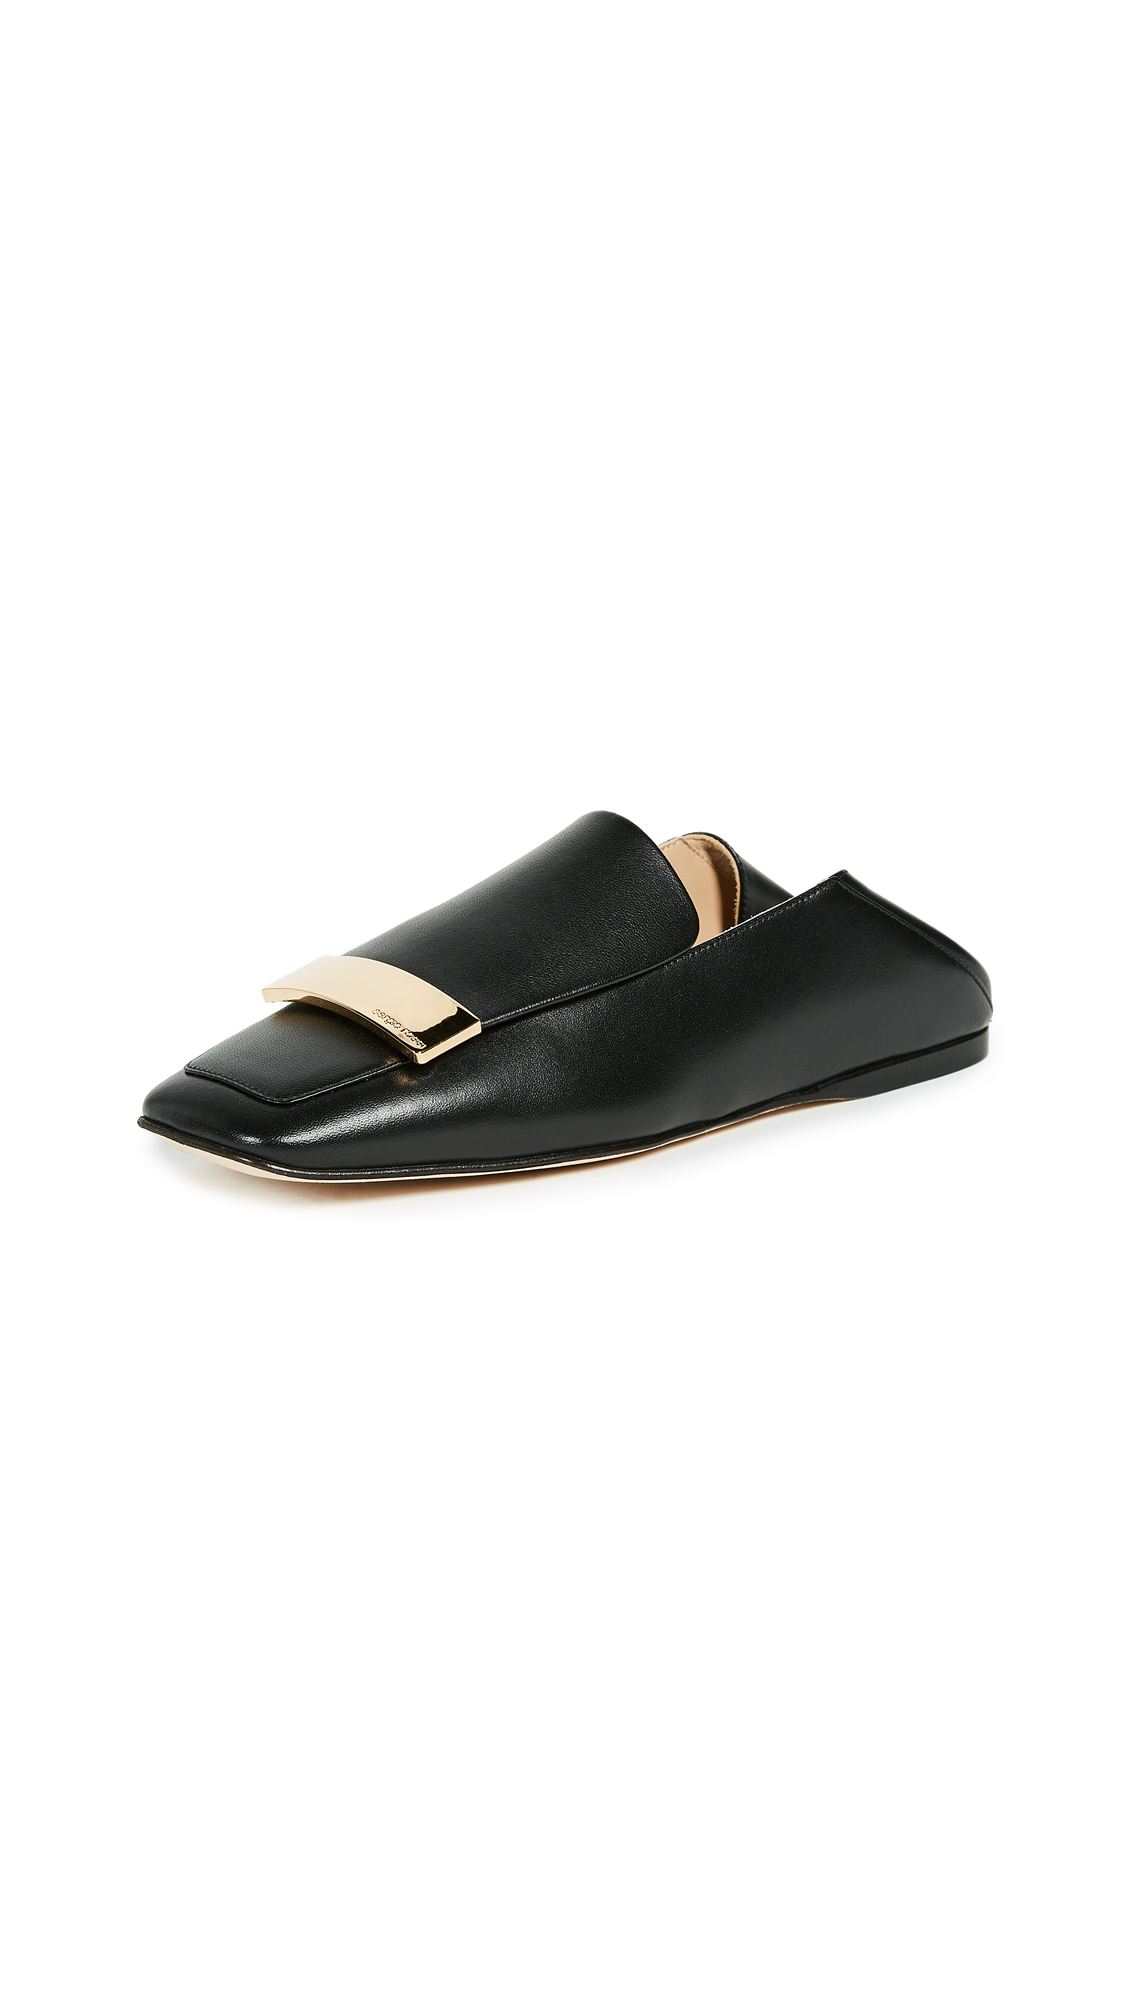 Sergio Rossi Loafer Flats - Black